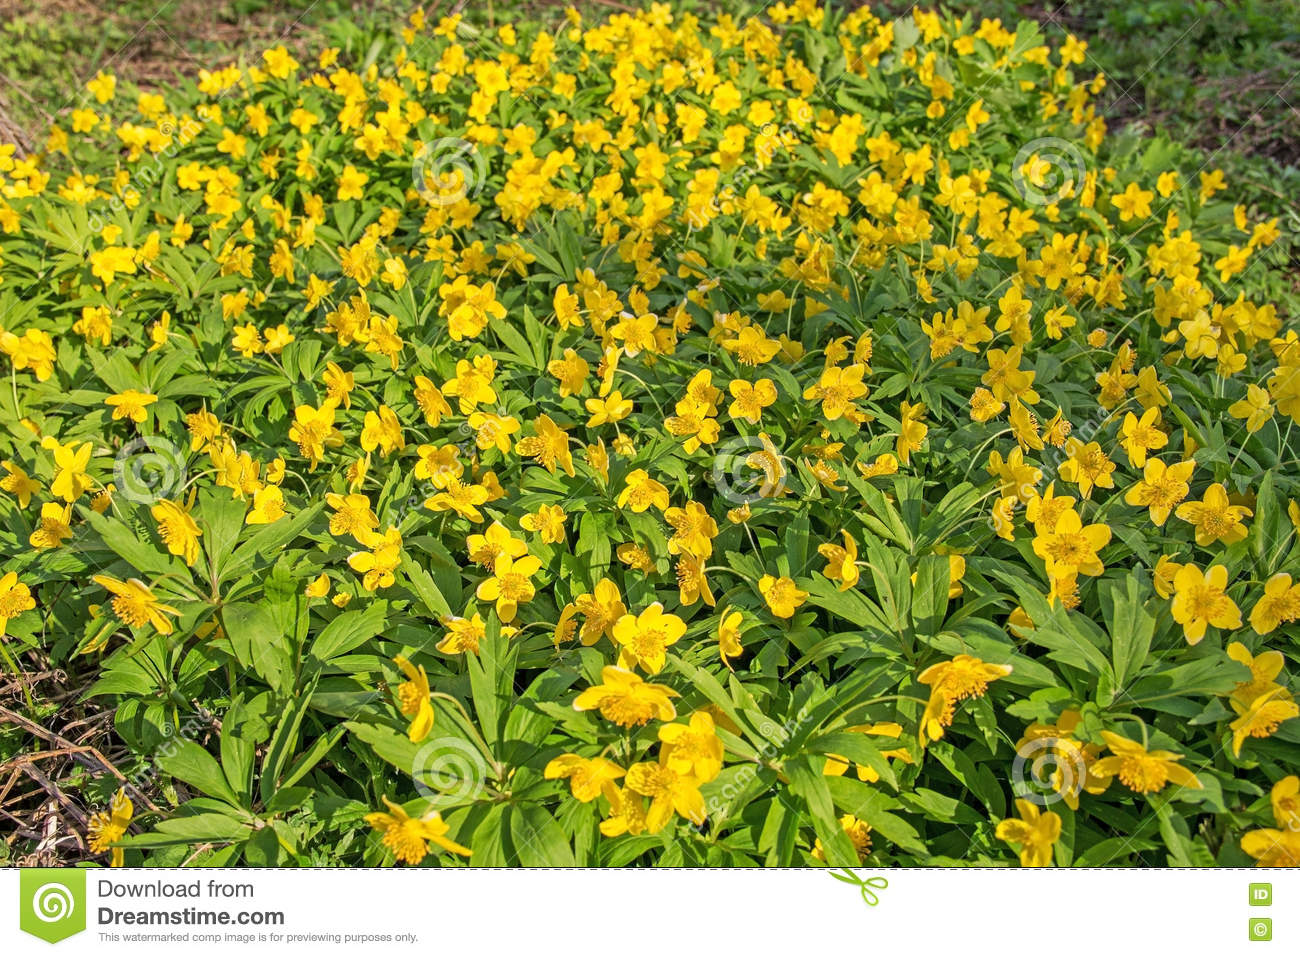 Beautiful poisonous yellow flowers ranunculus repens in spring day beautiful poisonous yellow flowers ranunculus repens in spring day mightylinksfo